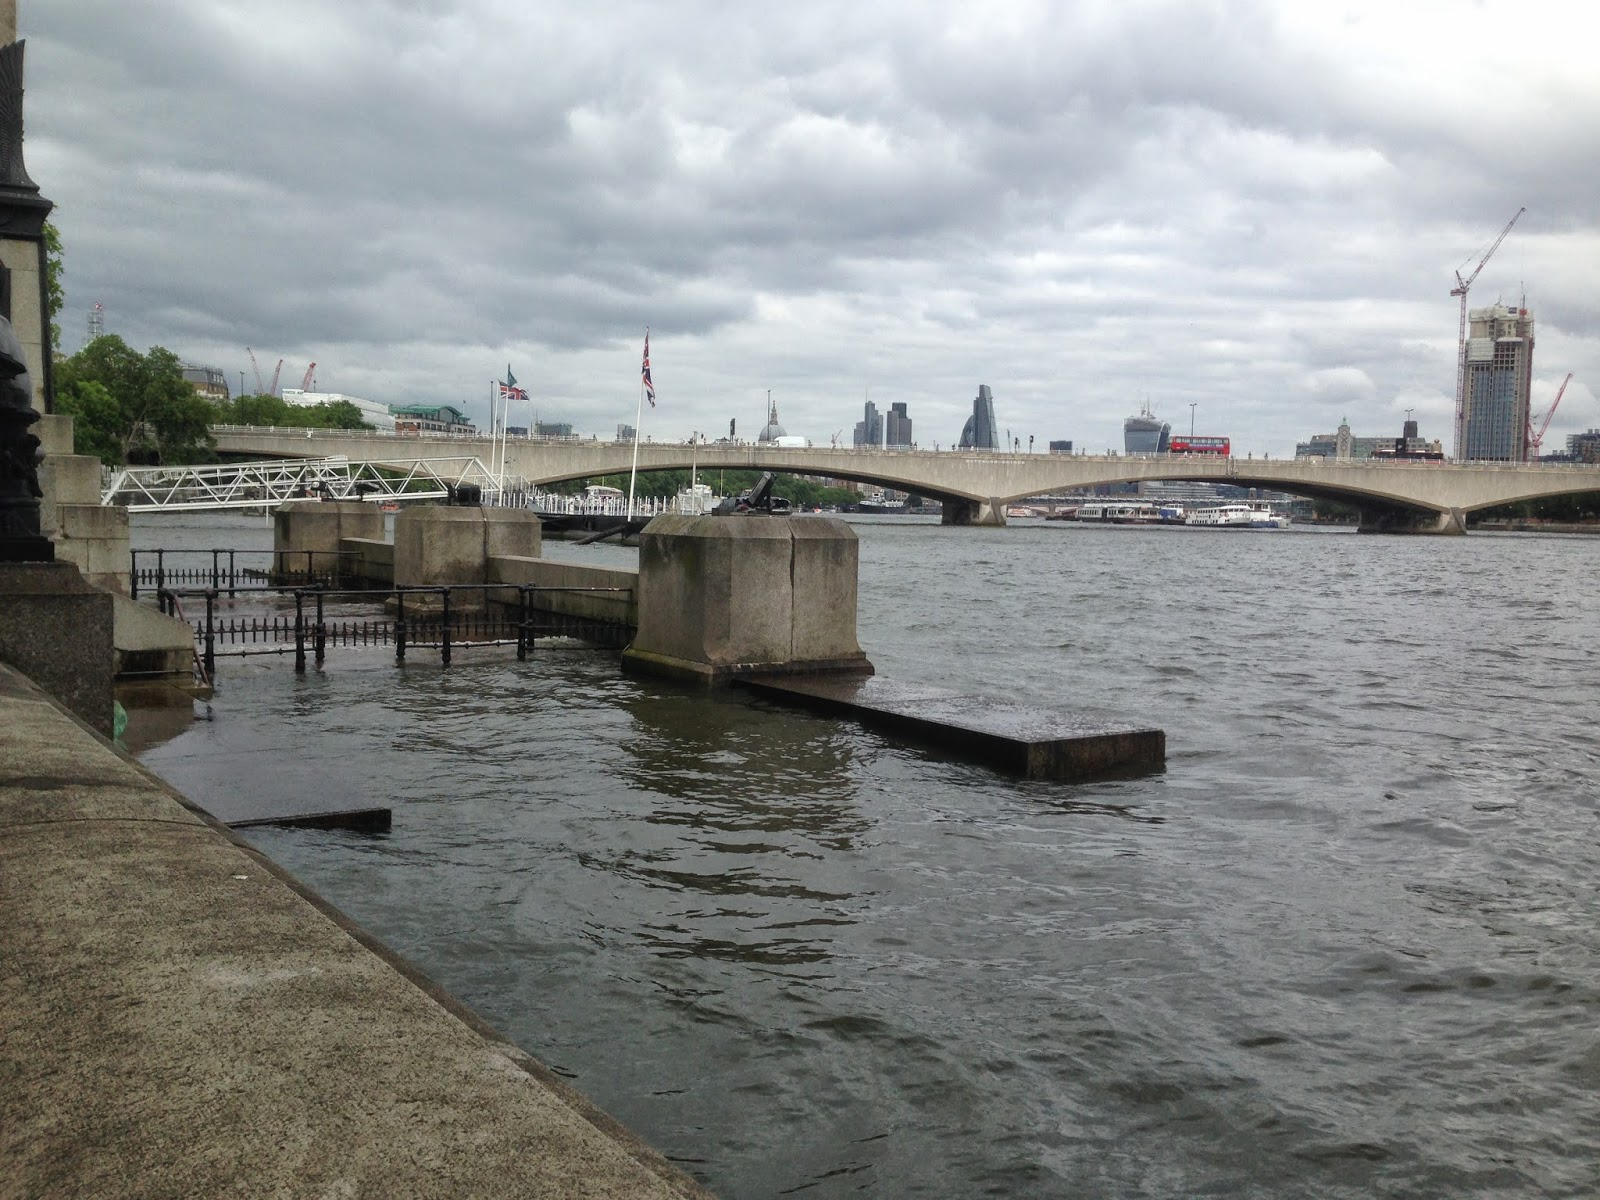 High Tide Victoria Embankment